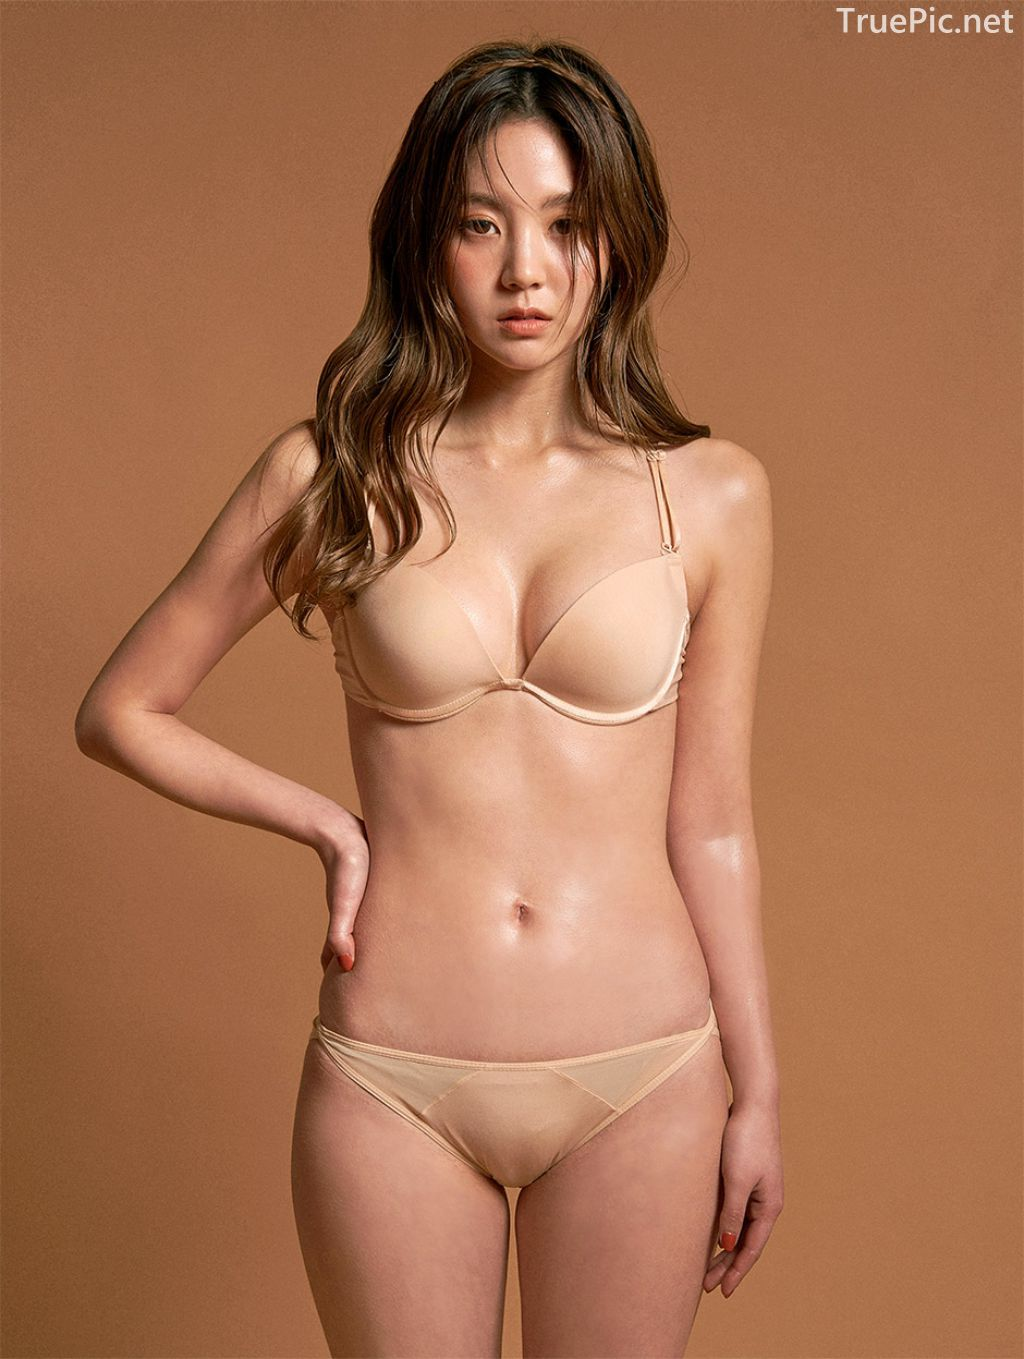 Korean Fashion Model - Lee Chae Eun - Nude For You Lingerie Set - TruePic.net - Picture 3